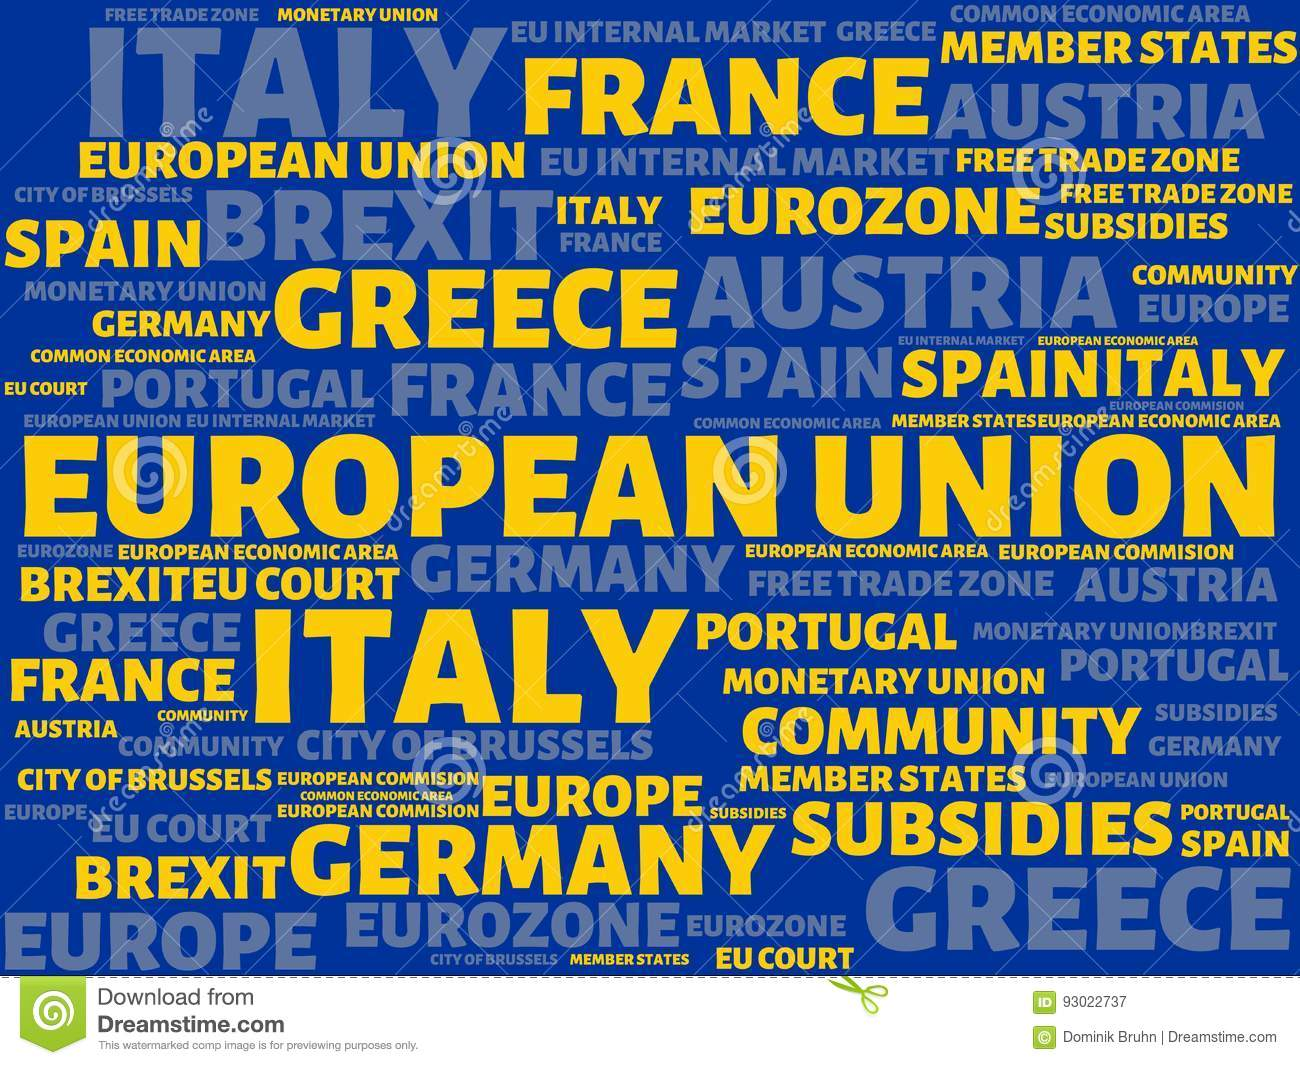 Image European Union Image With Wordsociated With The Topic European_union Word Cloud Cube Letter Image Il Ration